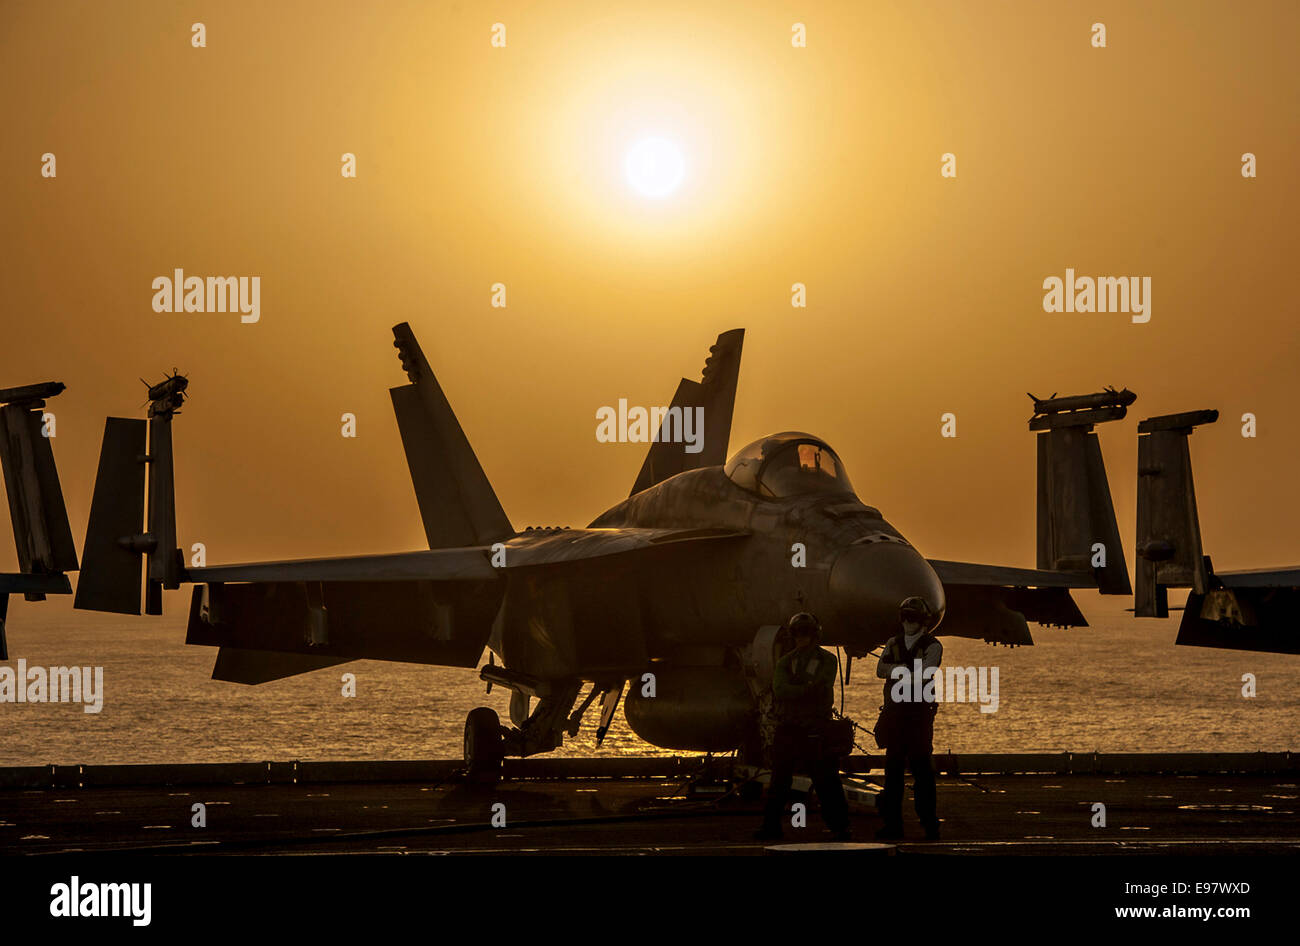 A US Navy F/A-18E Super Hornet fighter aircraft is silhouetted by the setting sun on the flight deck of the aircraft Stock Photo